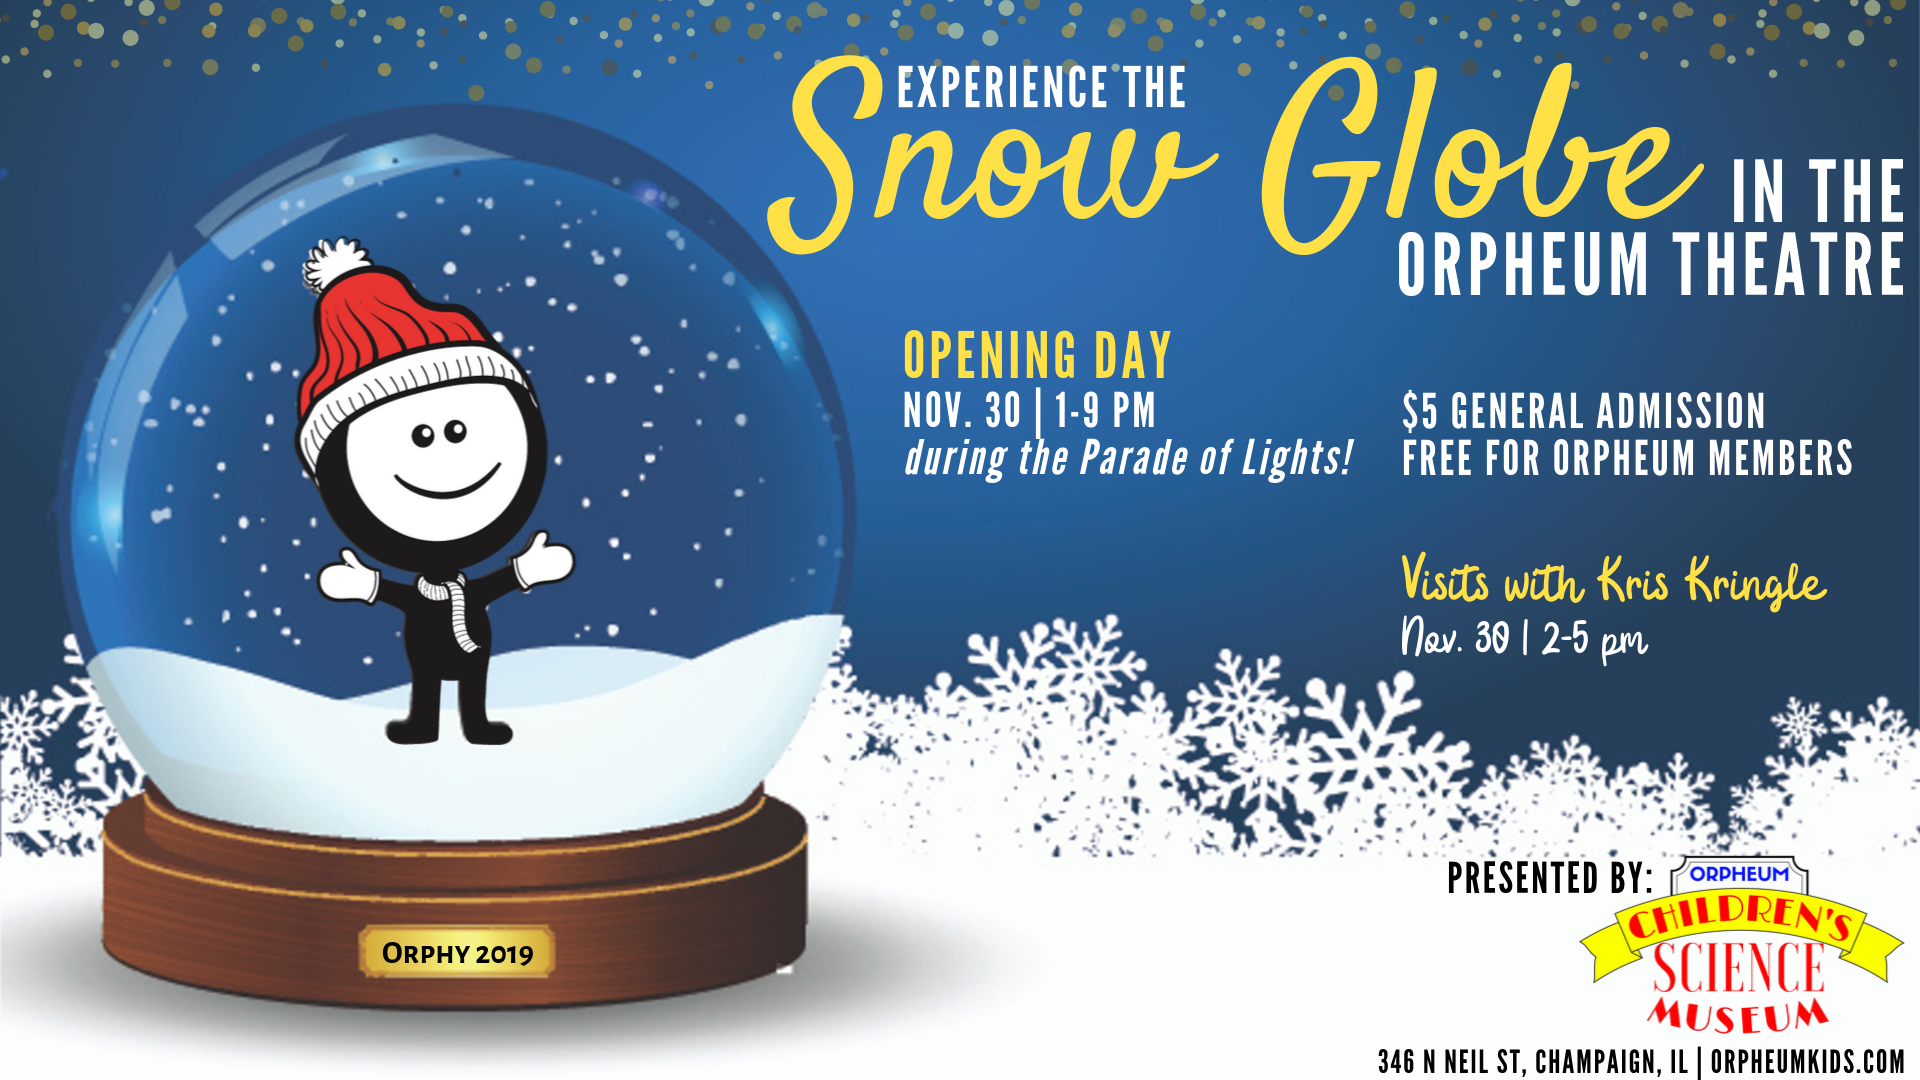 PPT - Snow Globe 2019 - Opening Day - No Sponsor